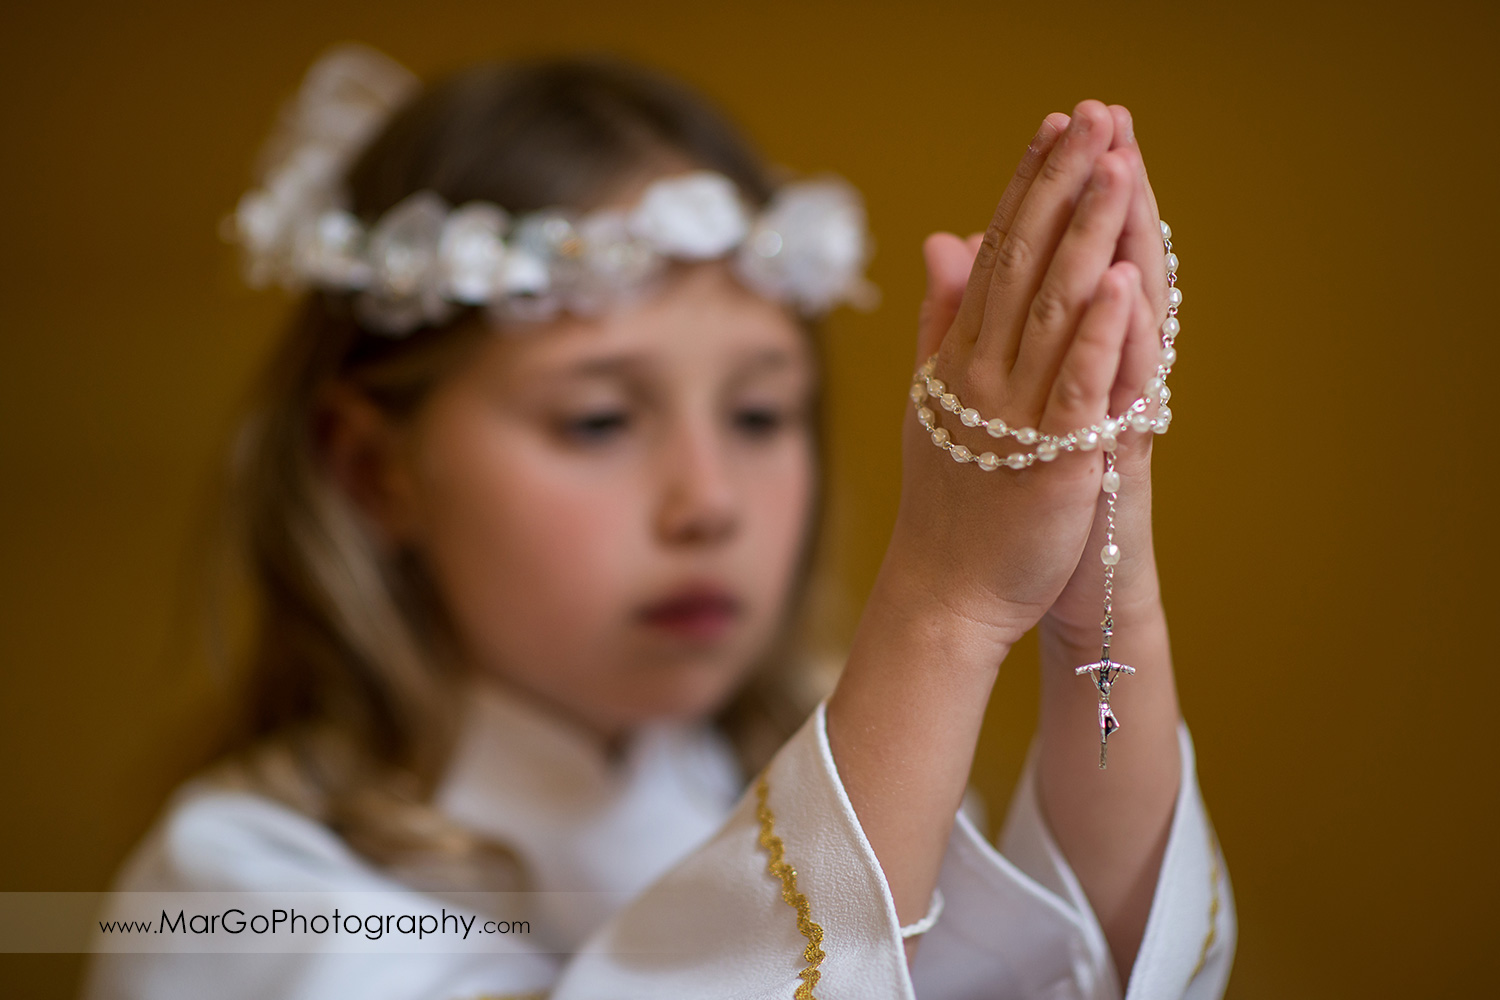 first communion girl in white alb holding rosary in folded hands in wooden San Jose church pews - focus on cross